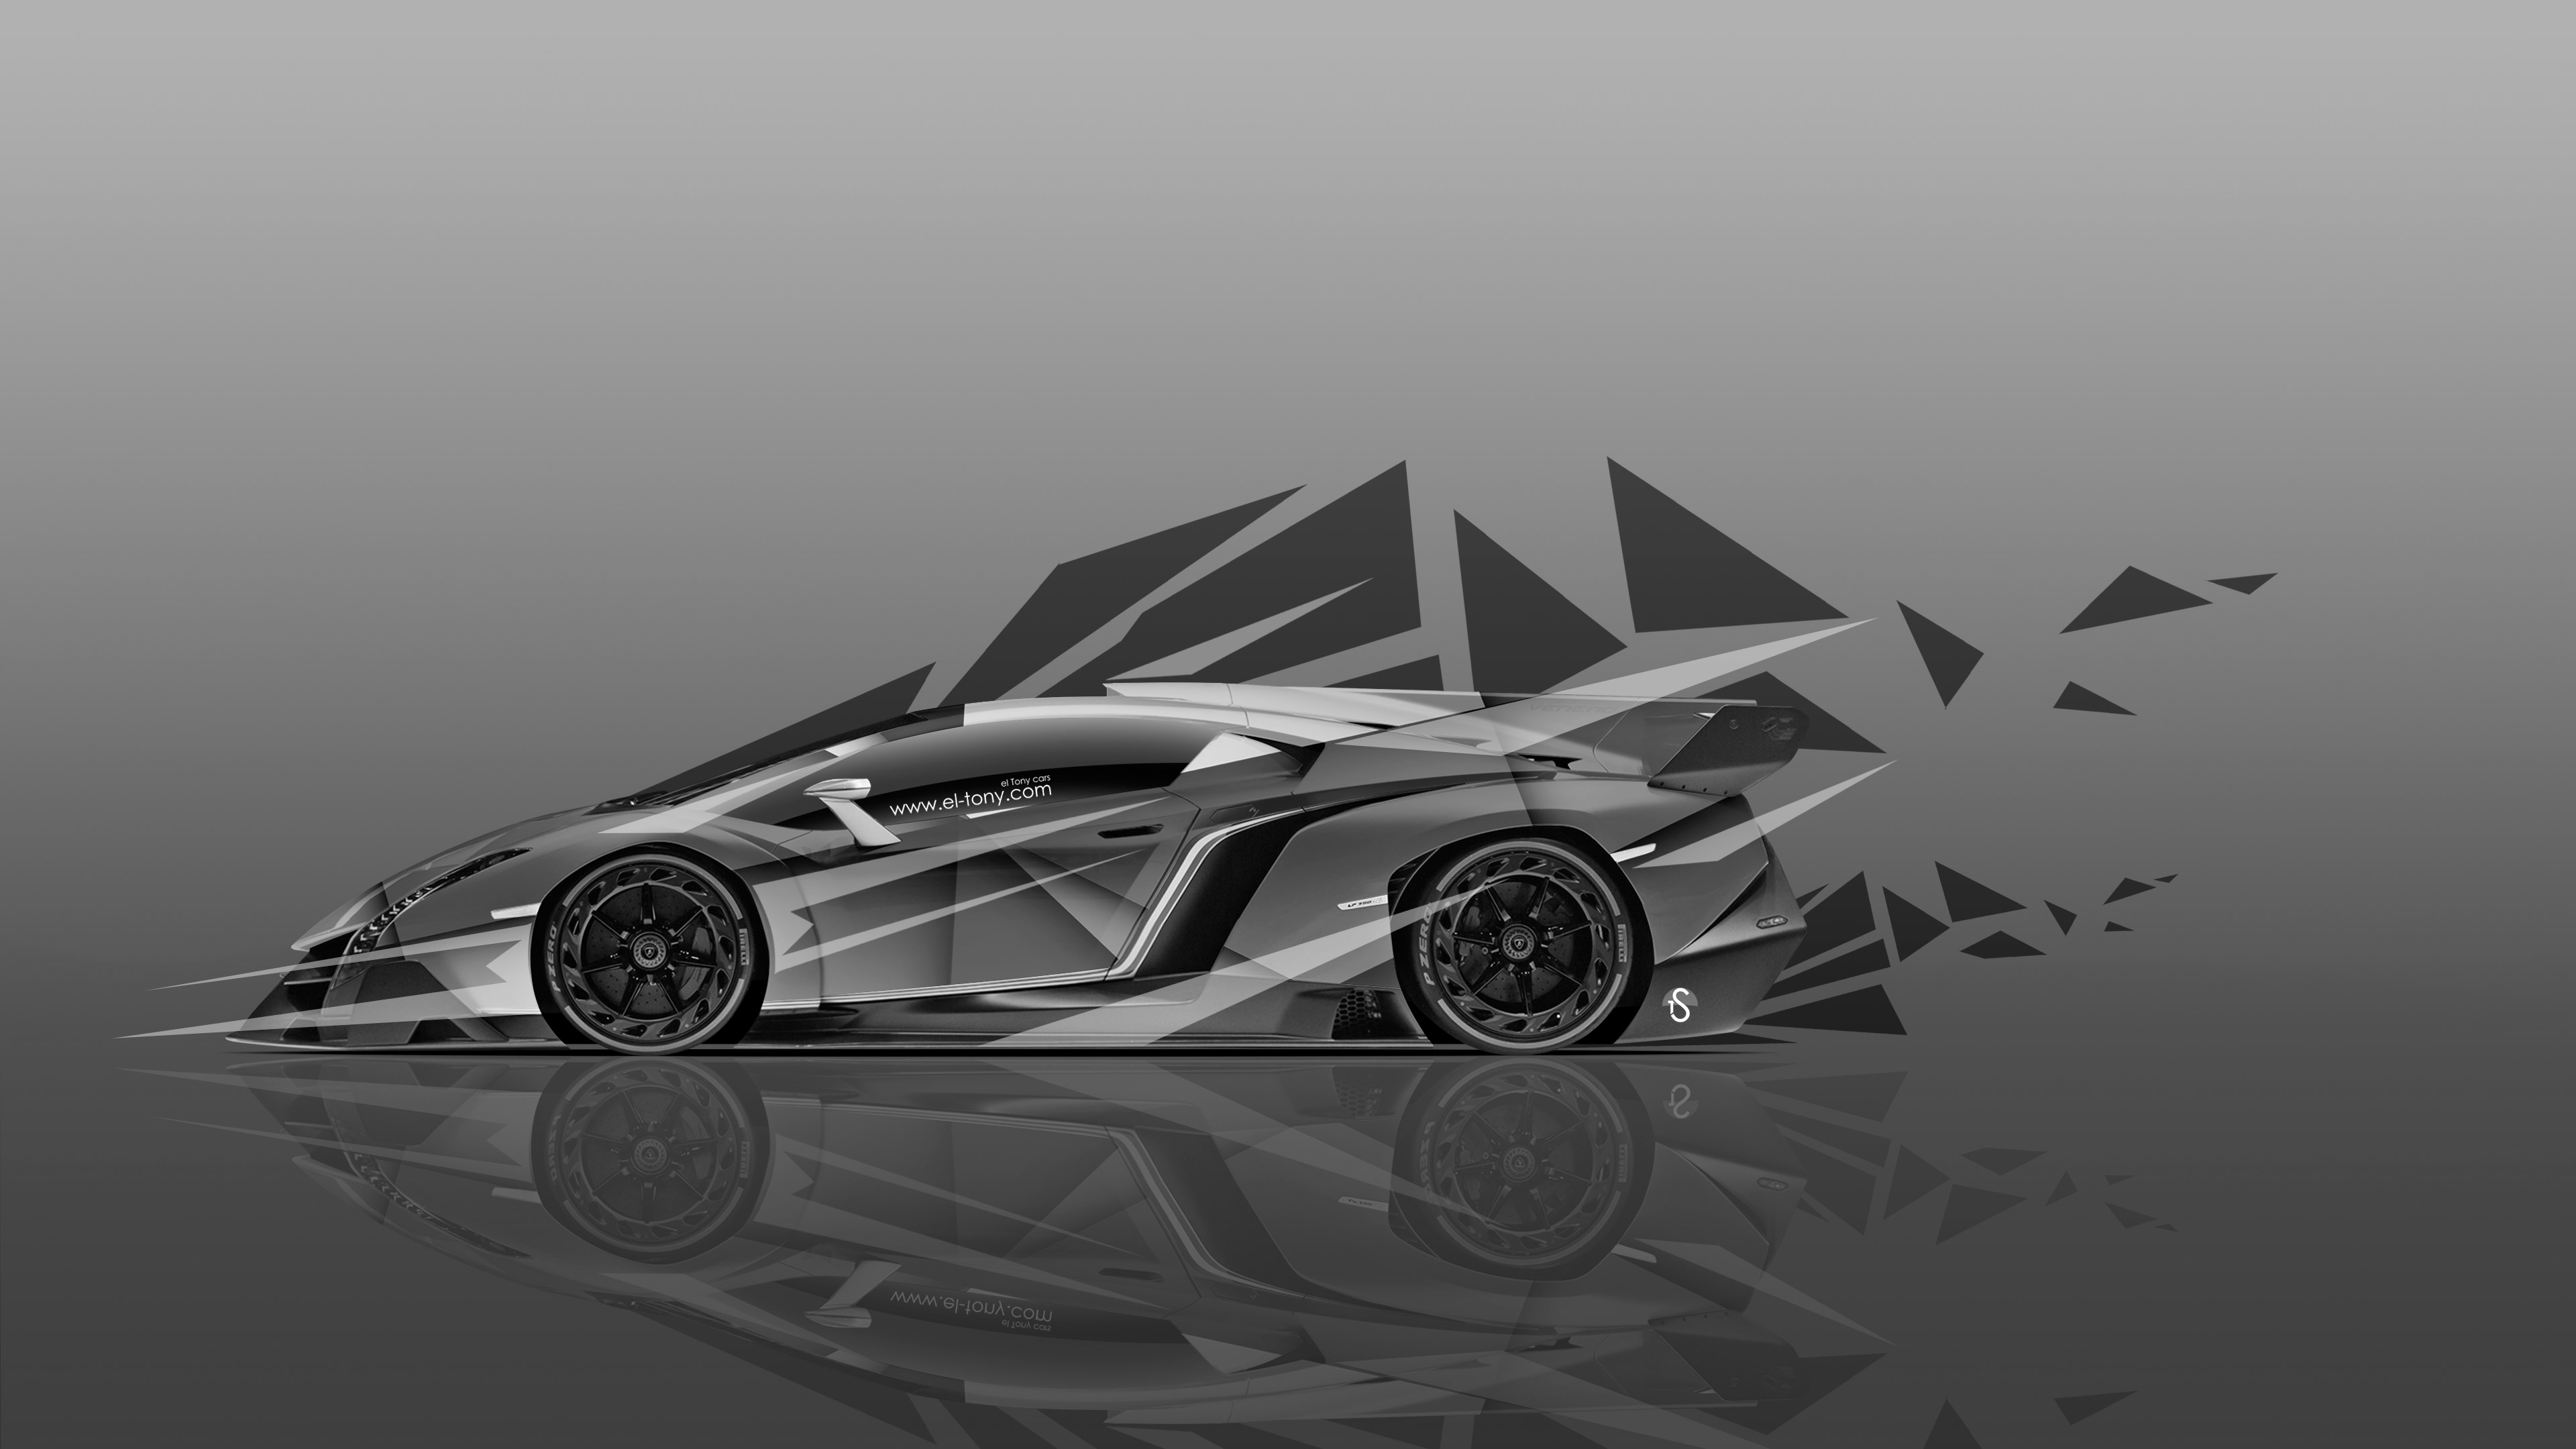 ... Lamborghini Murcielago Up Fire Abstract Car 2013 | El Tony ...